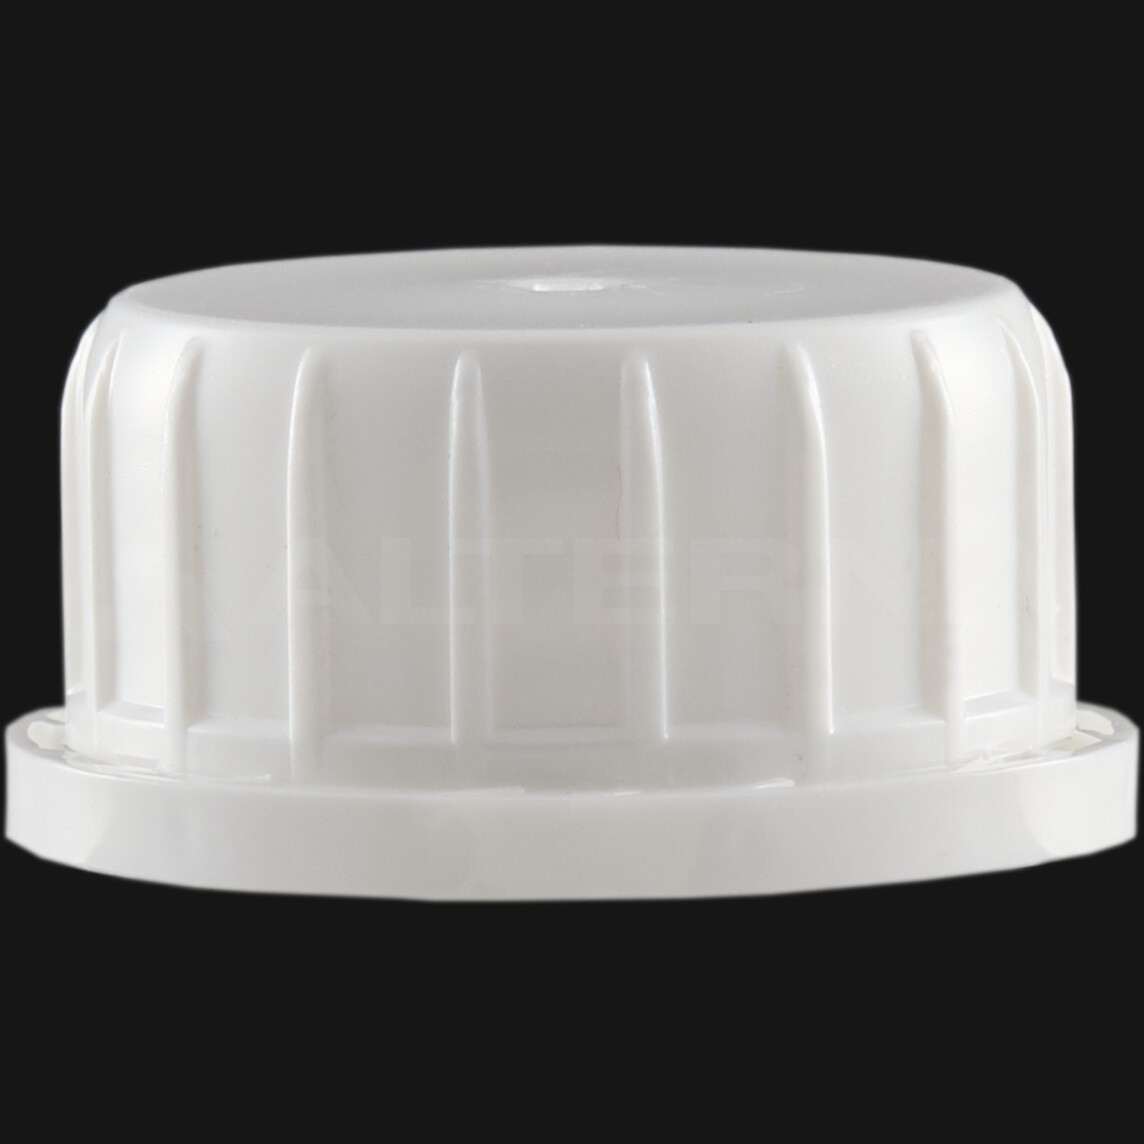 38 mm Foam Seal Vented Secure Cap